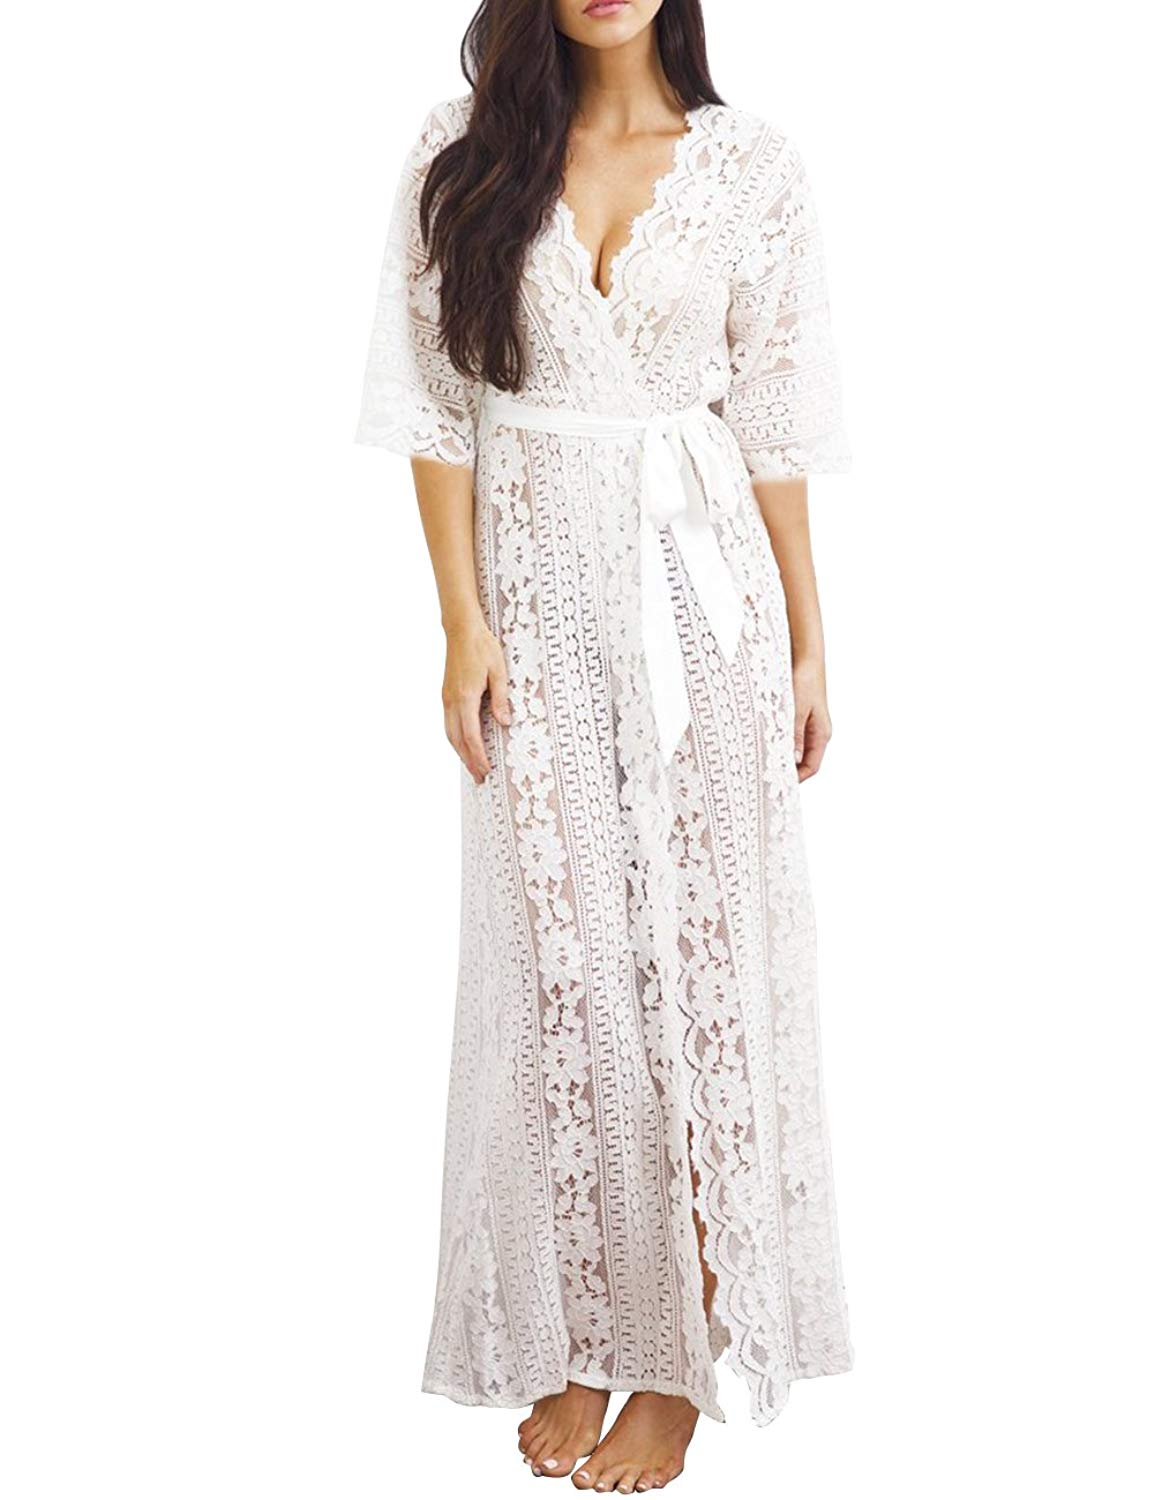 4a28ba0178848 Get Quotations · Angielucky Women's Embroidered Beach Maxi Dress Bathing  Suit Cover up Beach Cover up Dress